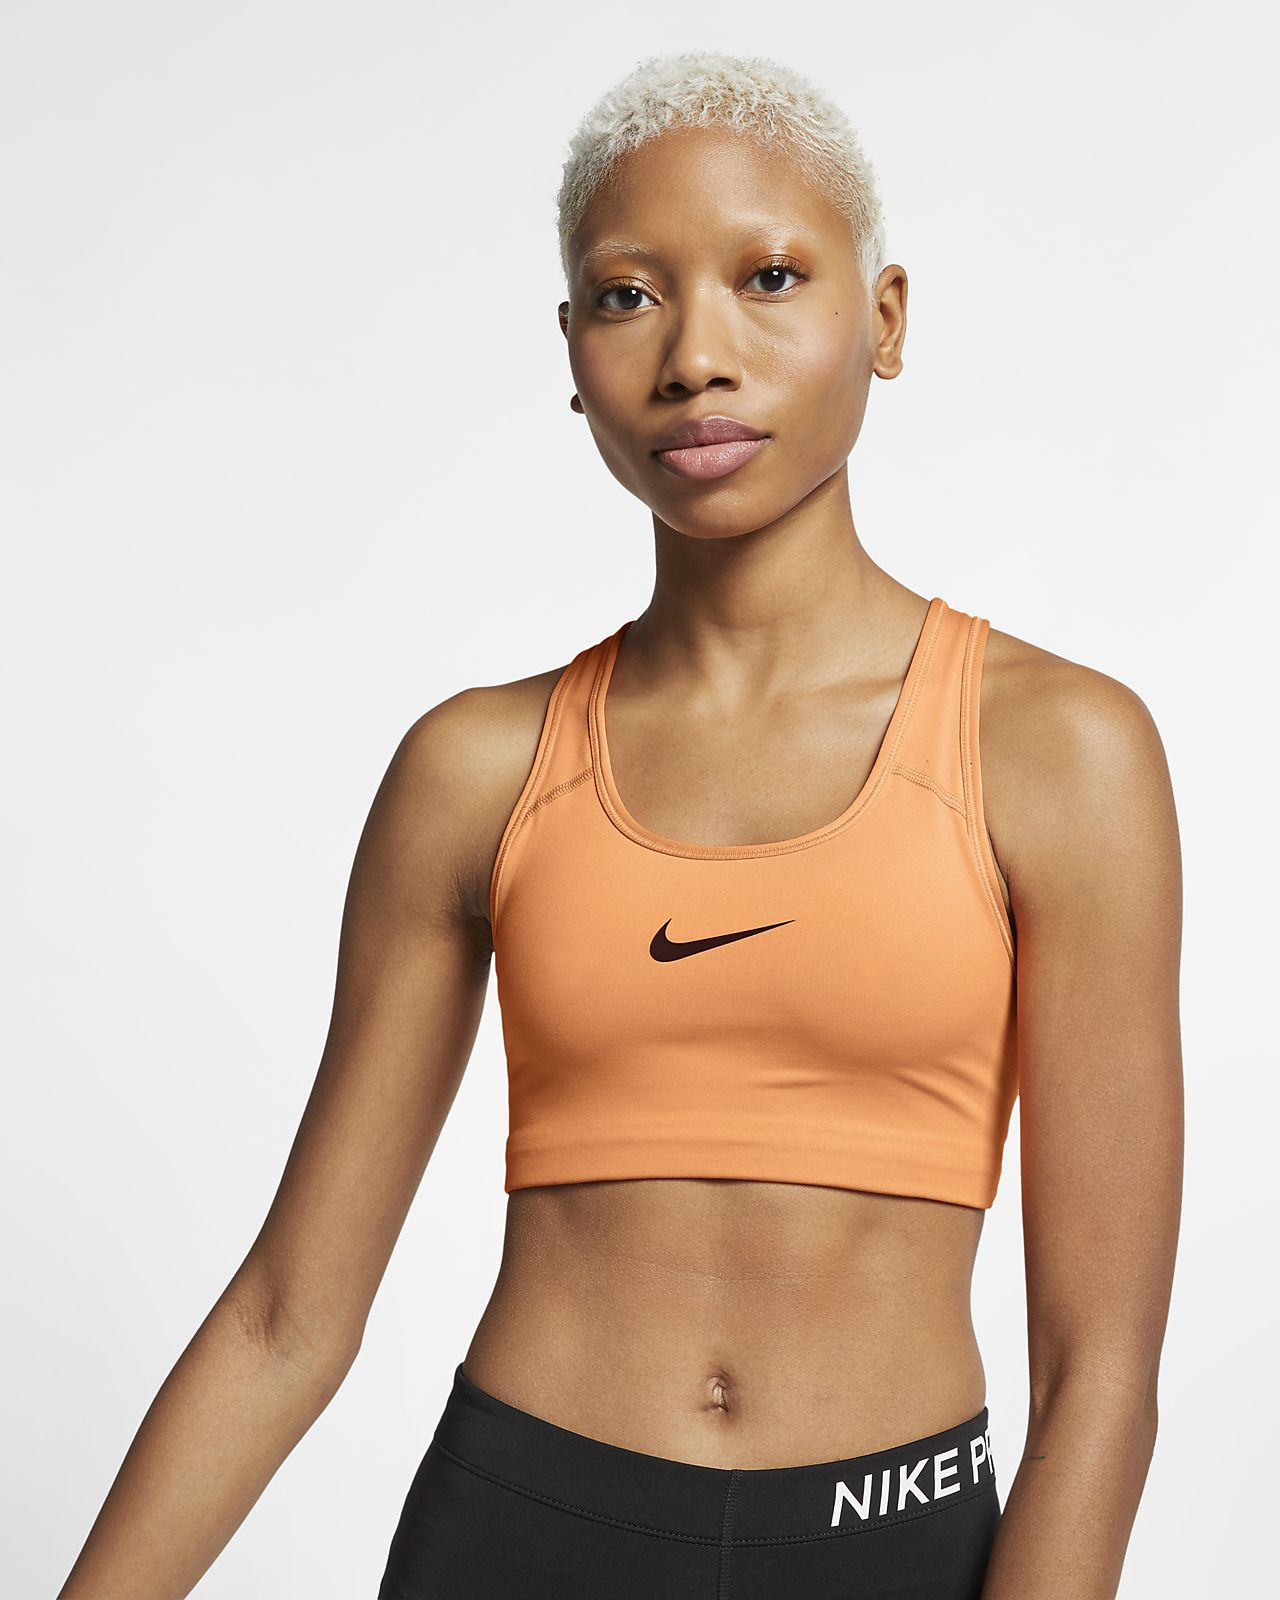 cac7aade43 Nike Women's Swoosh Medium-Support Sports Bra. Nike.com GB